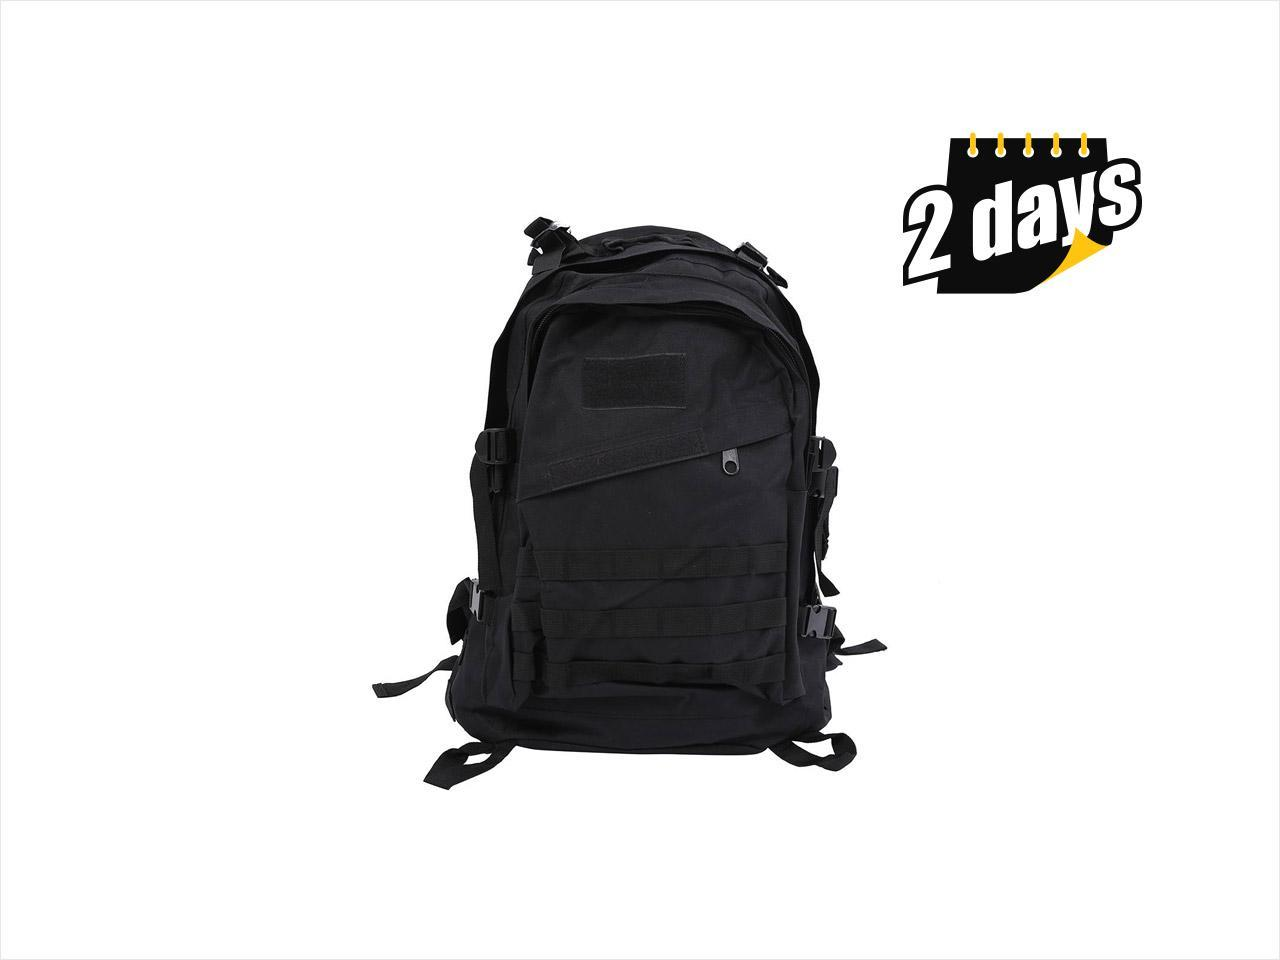 233687451073 THZY Outdoor 40L 600D Waterproof Oxford Cloth Military Rucksack Tactical  Backpack Bag ACU Camouflage Sports Travelling ...